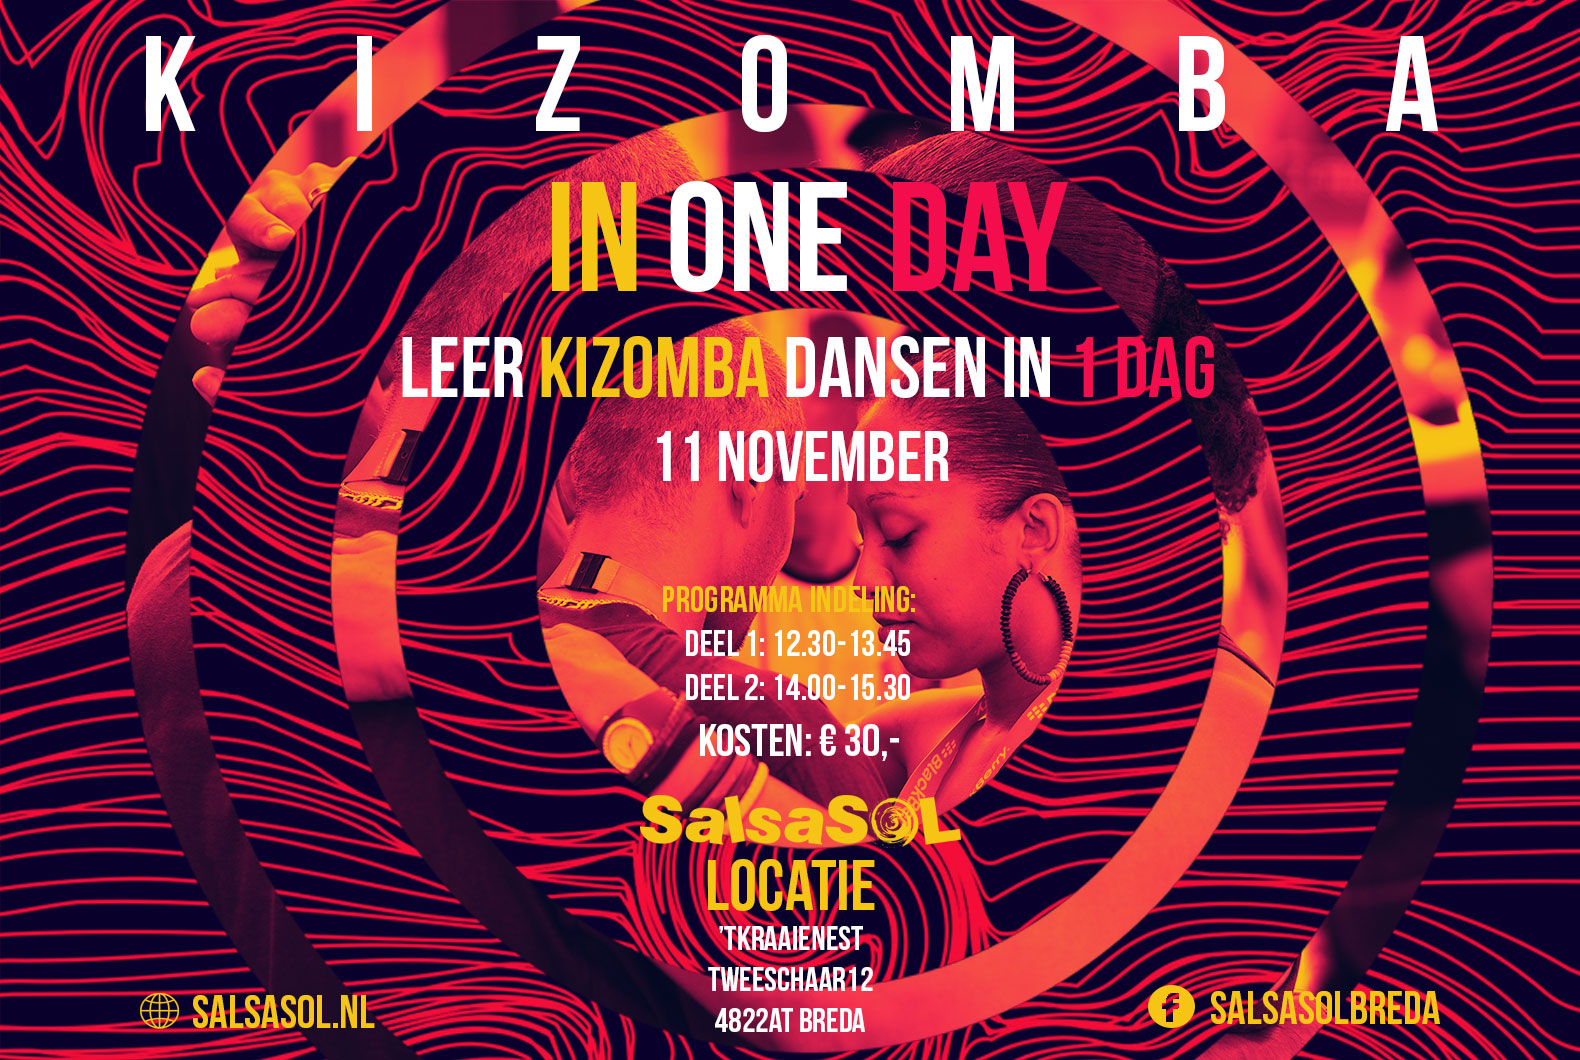 Kizomba in One Day